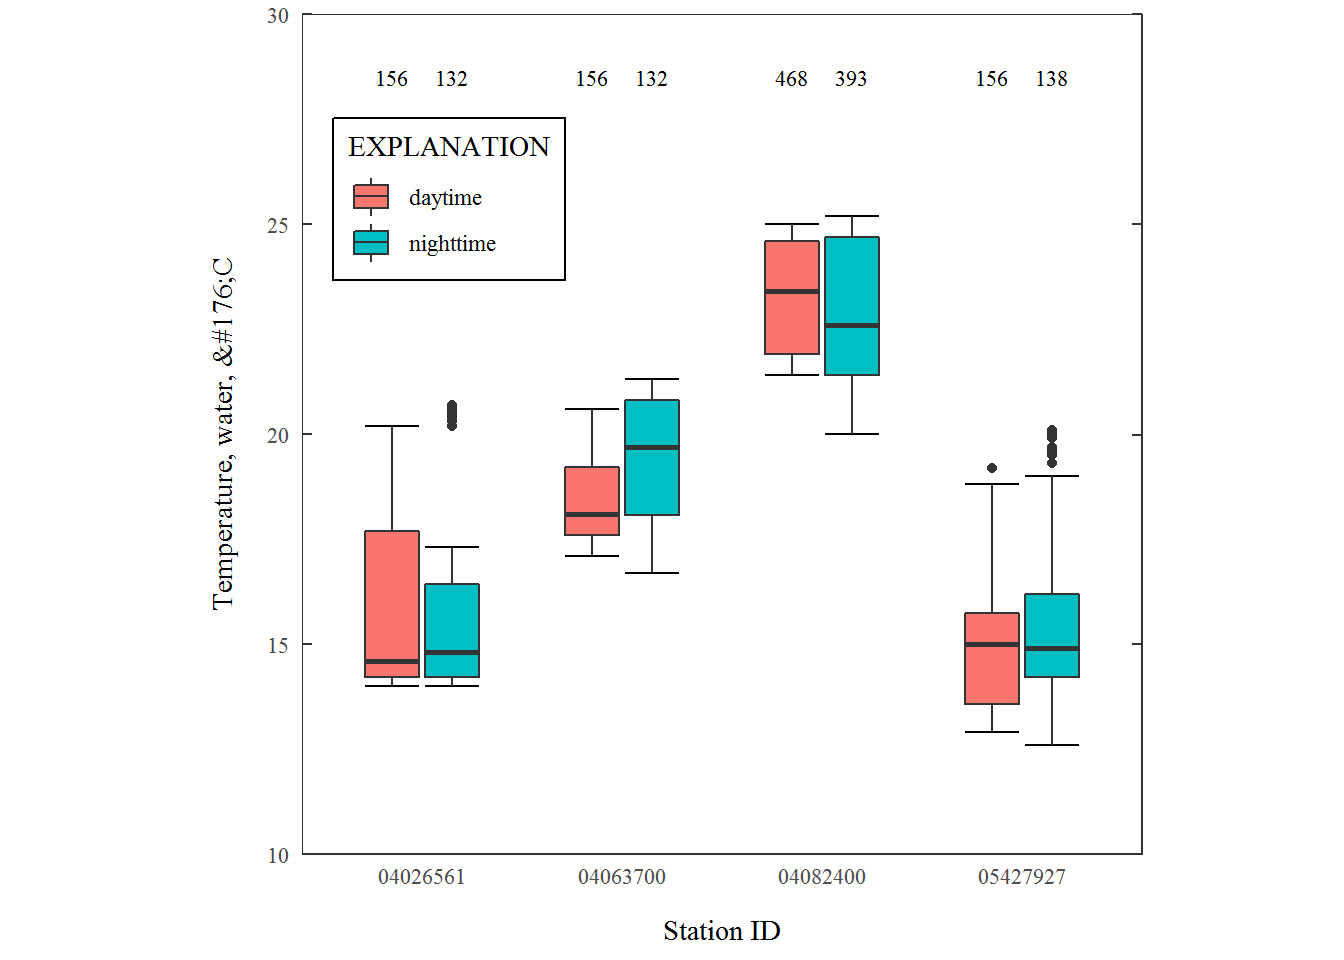 Exploring ggplot2 boxplots - Defining limits and adjusting style